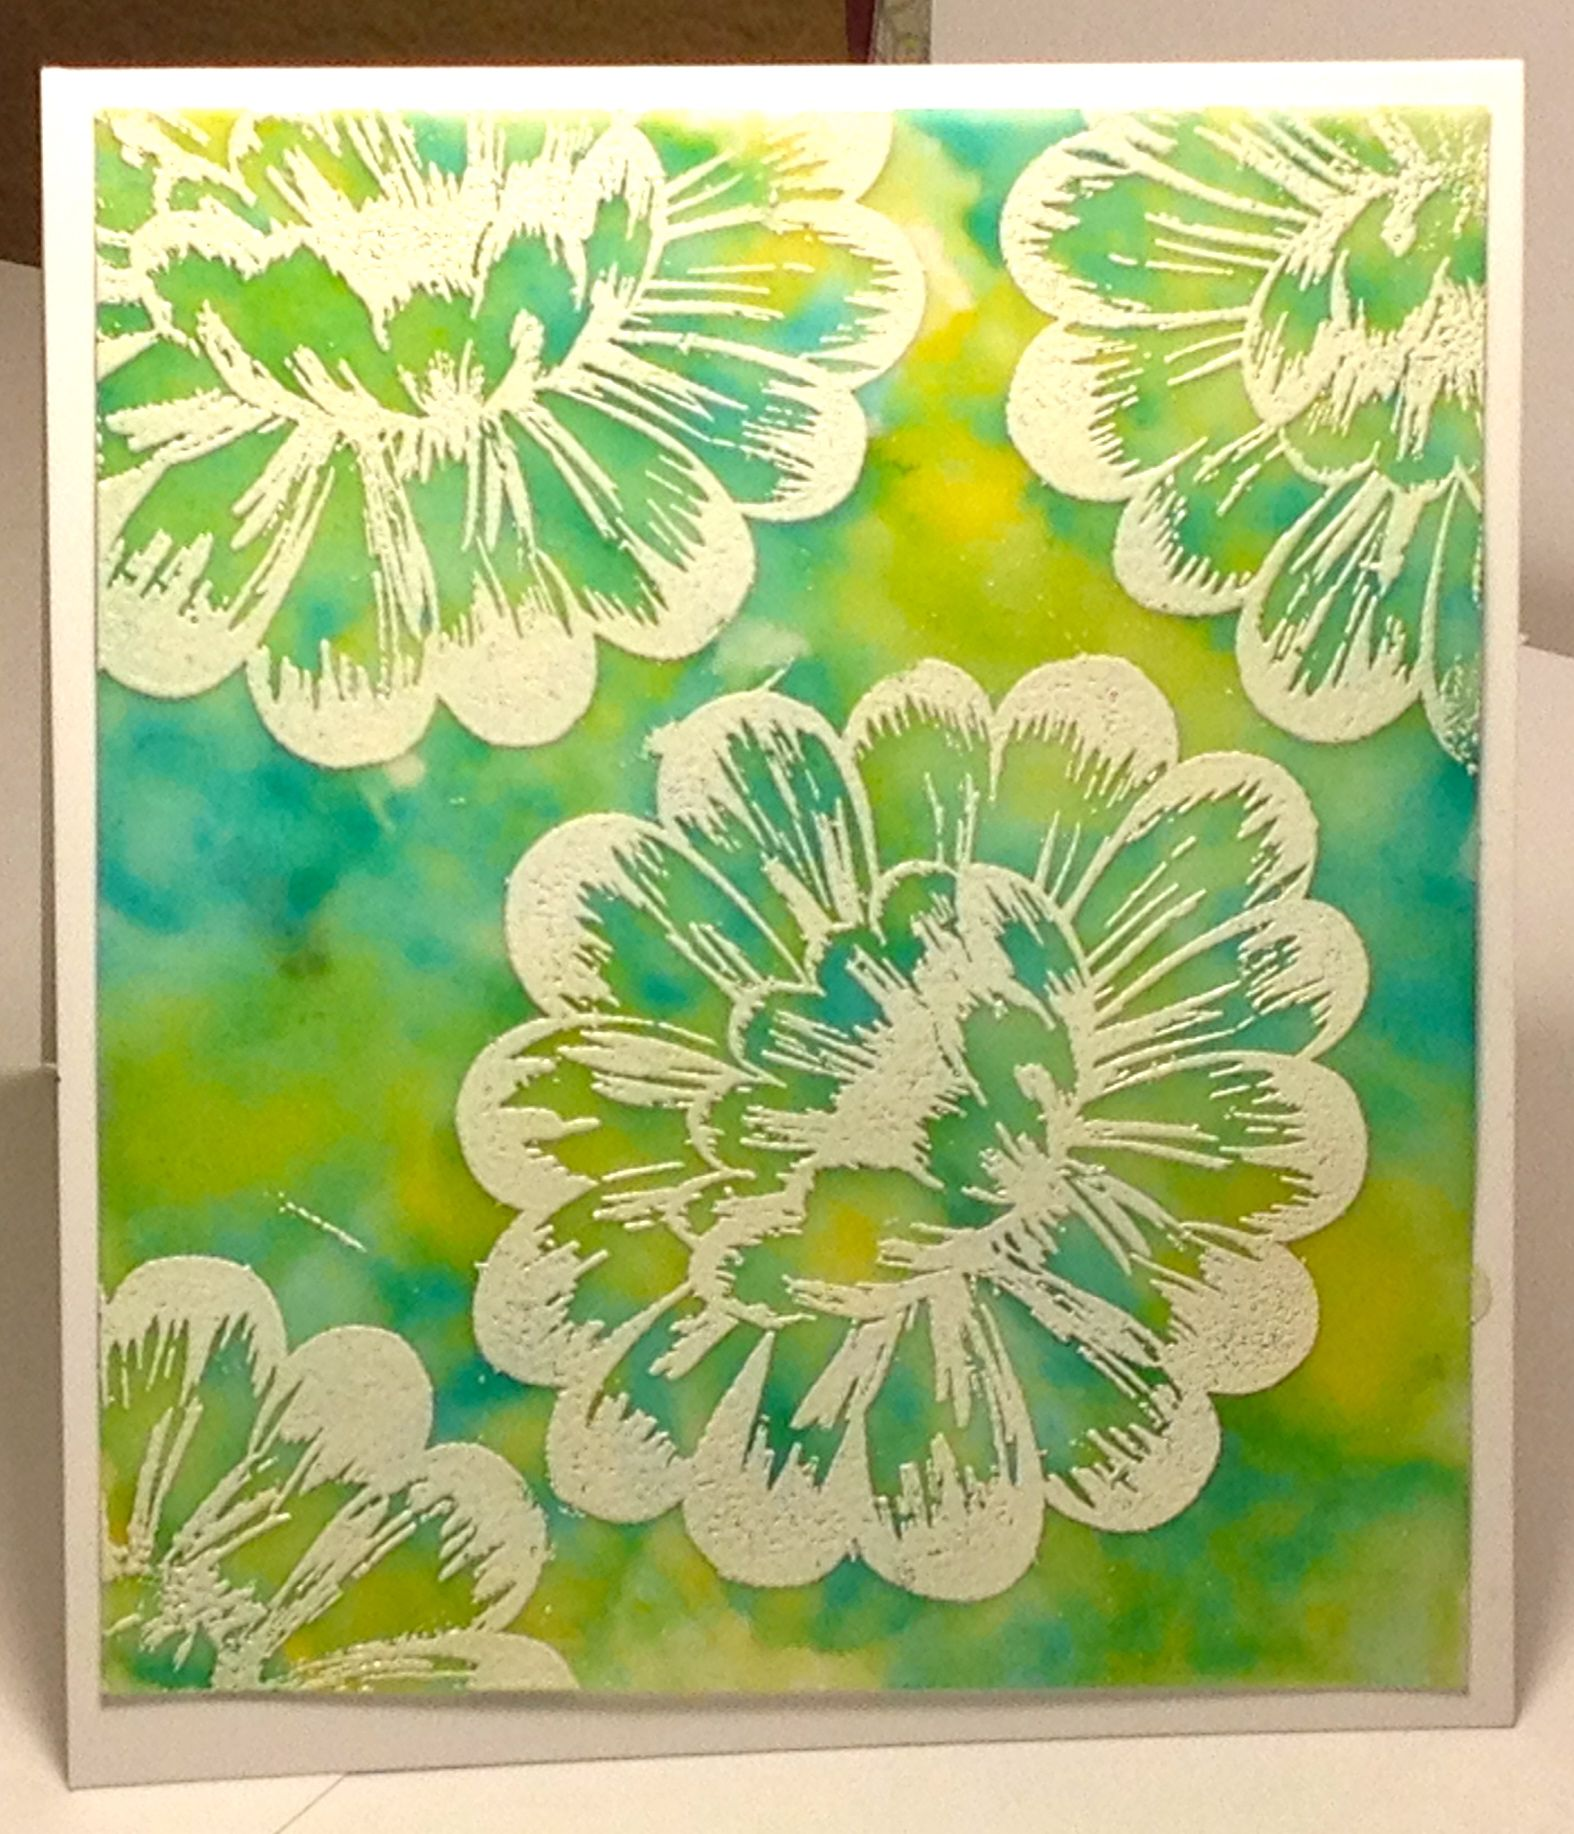 Alcohol ink on vellum